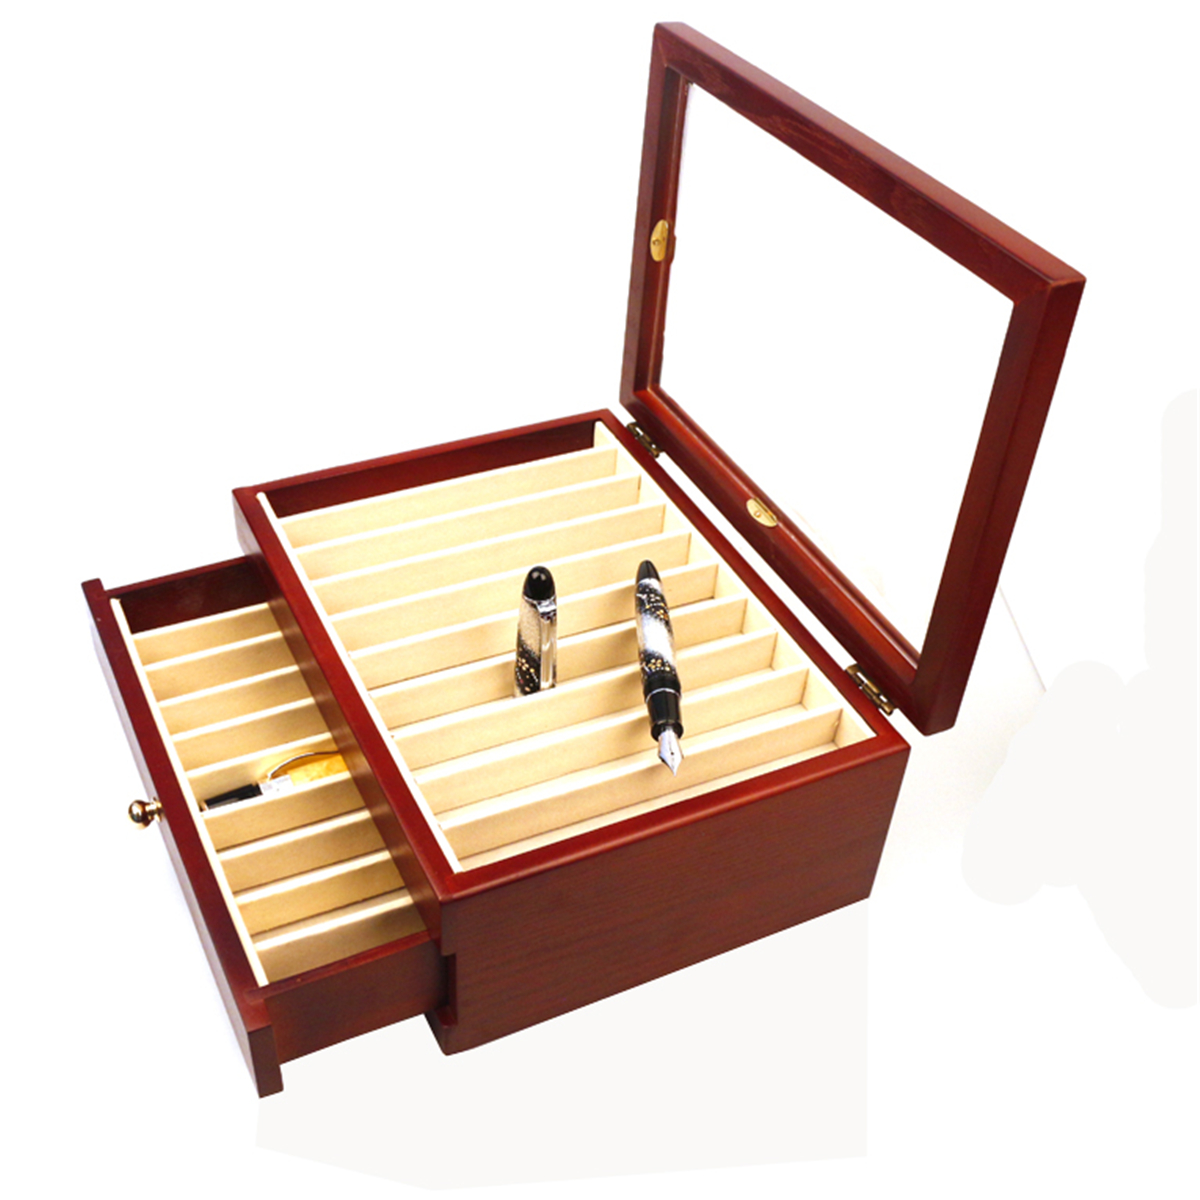 20 Pieces Fountain Pens Holder Wooden Pen Display Case With Antique Wind Red Color Container